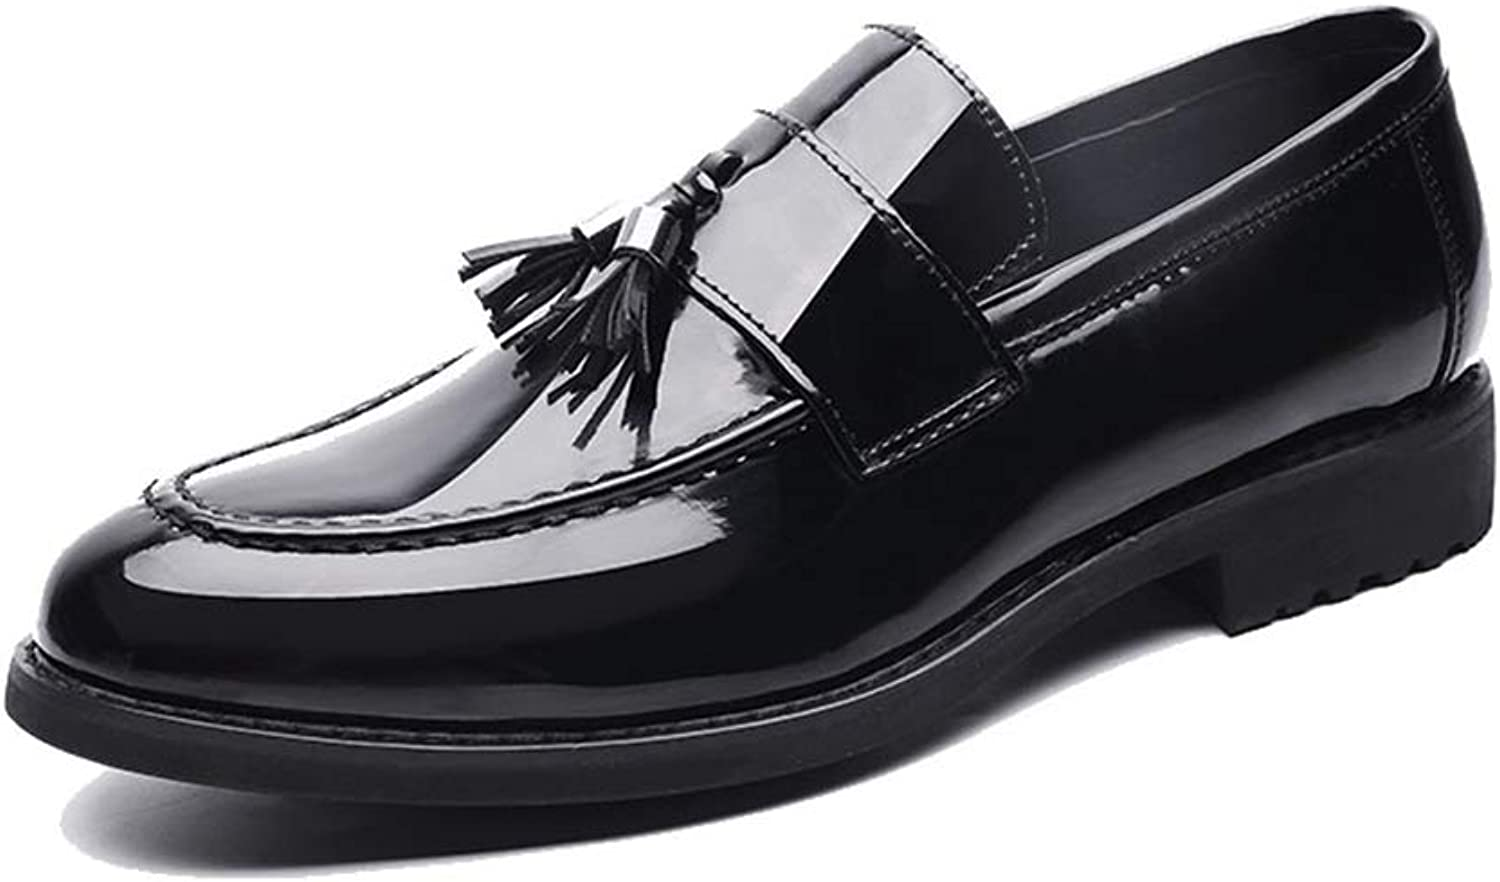 Men's Fashion Oxford Casual Classic Comfortable Cover Feet Suede Patent Leather Formal shoes. Cricket shoes